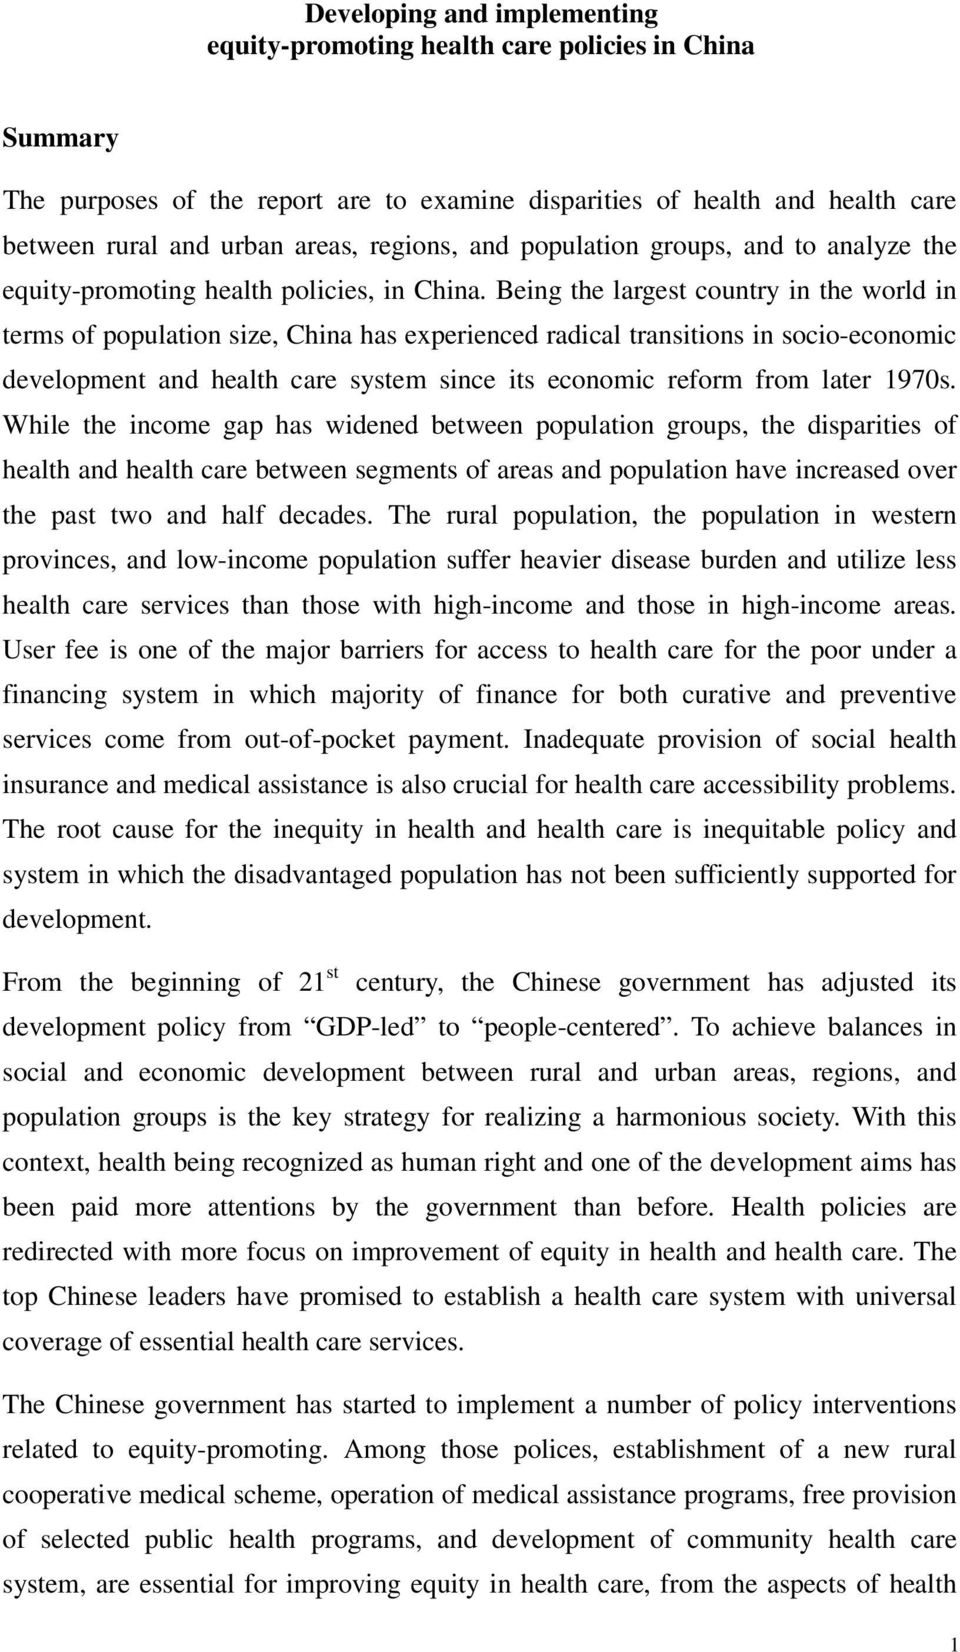 Being the largest country in the world in terms of population size, China has experienced radical transitions in socio-economic development and health care system since its economic reform from later